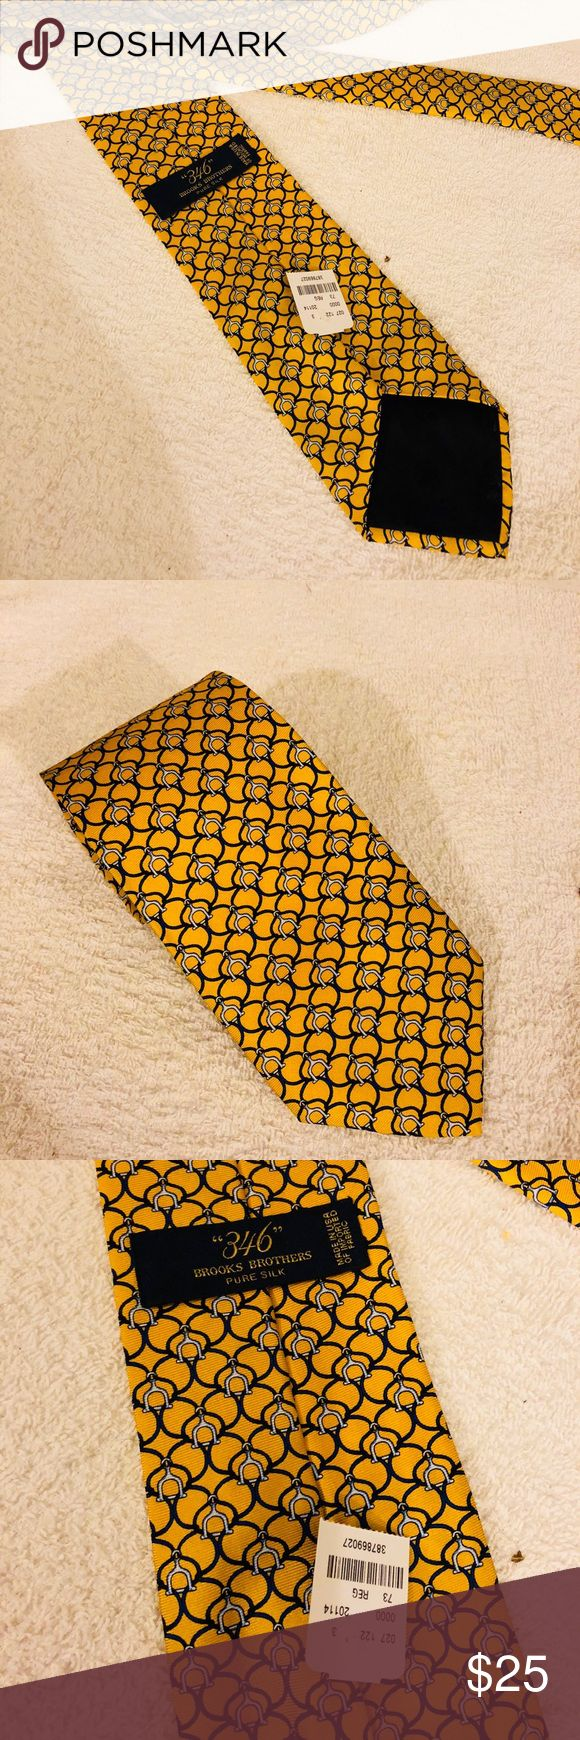 Brooks Brothers NWT Gold & Navy Horse Bit Tie Brooks Brothers Gold With Navy and White Horse Bit Link Pattern Silk Necktie! NEW WITH TAGS! Please make reasonable offers and bundle! Ask questions! Brooks Brothers Accessories Ties